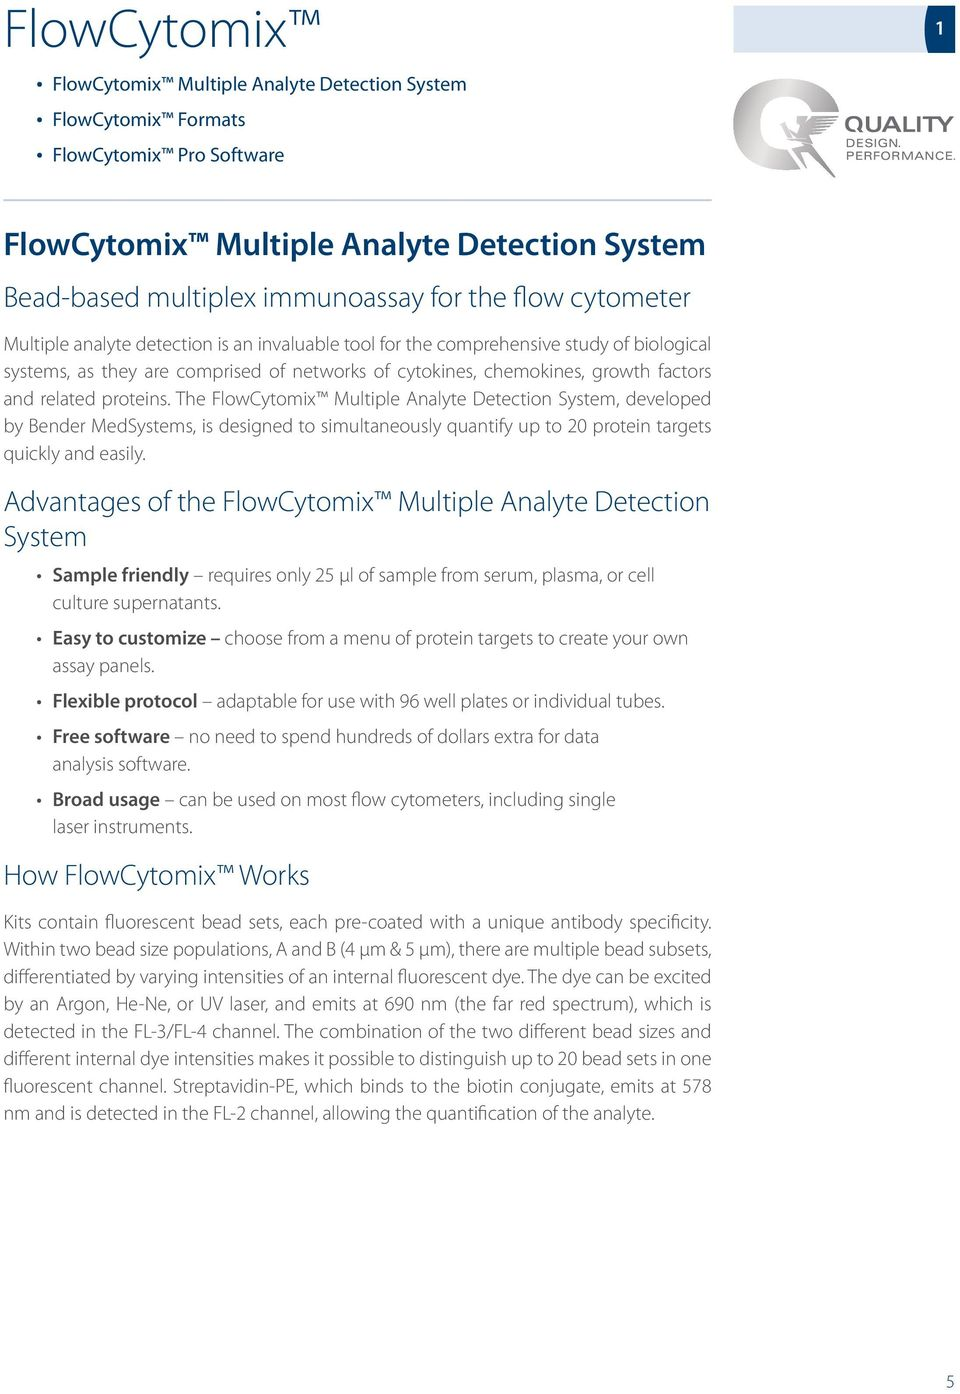 proteins. The FlowCytomix Multiple Analyte Detection System, developed by Bender MedSystems, is designed to simultaneously quantify up to 20 protein targets quickly and easily.